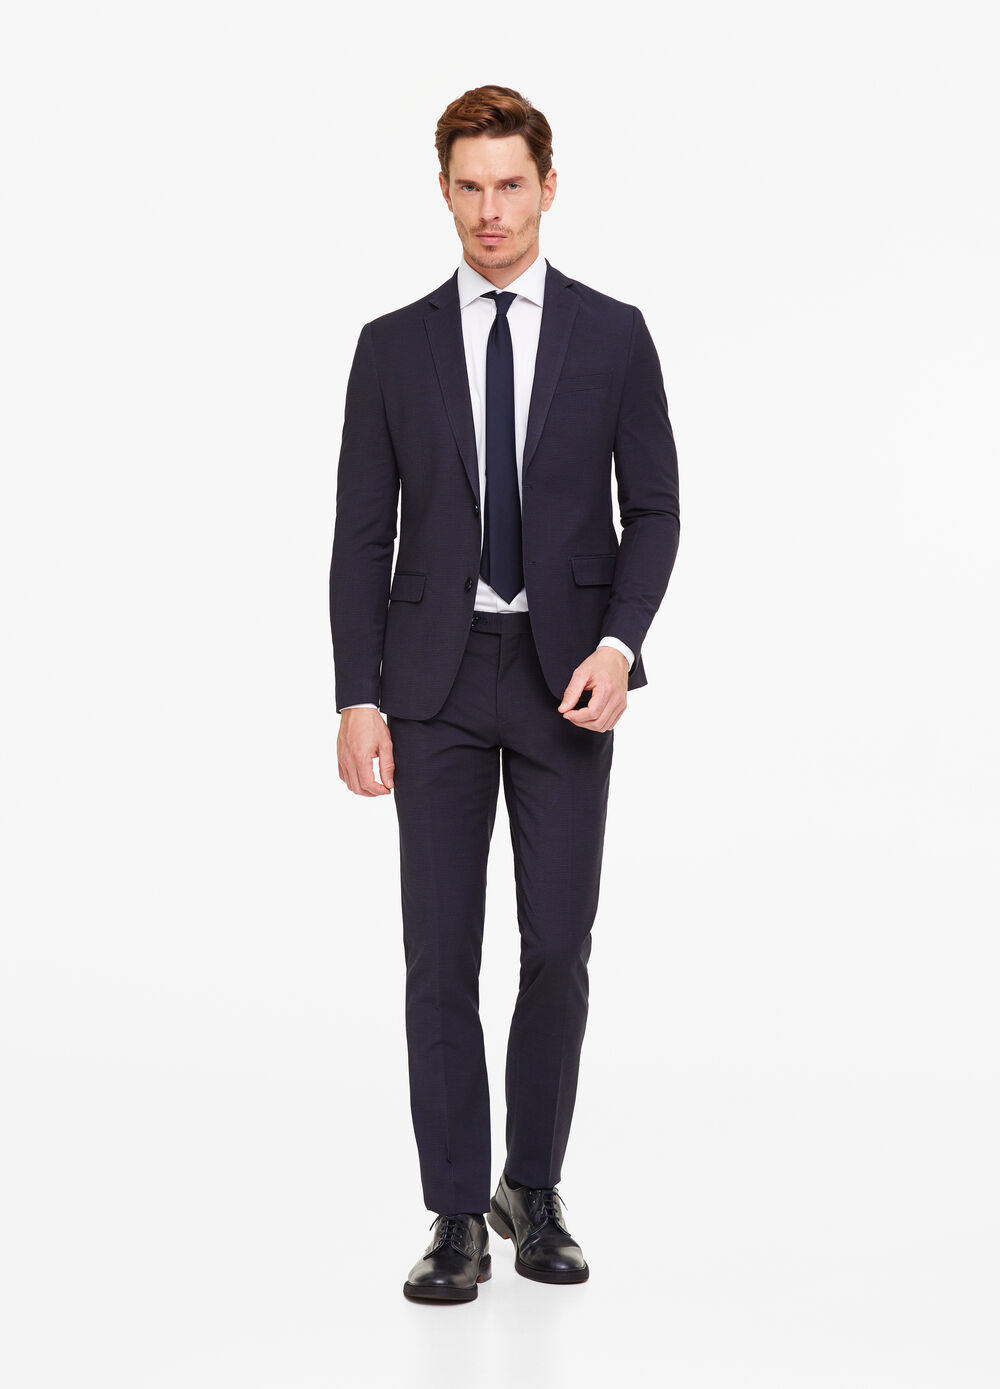 Micro check patterned suit